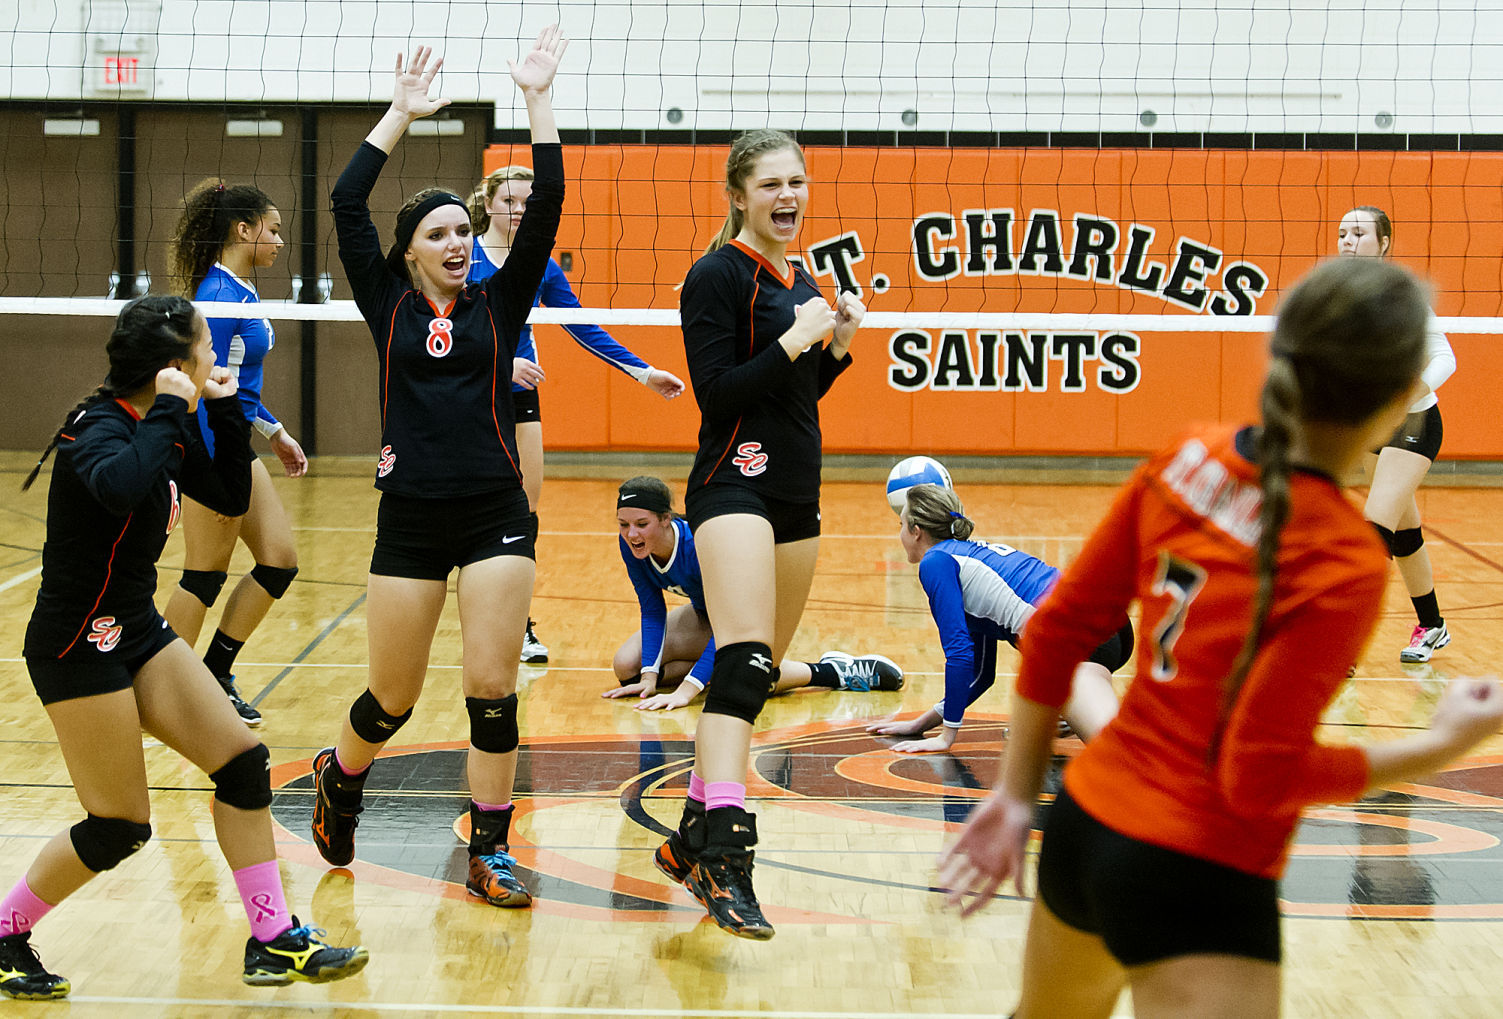 Photos: St. Charles Volleyball 2014 | High School ...